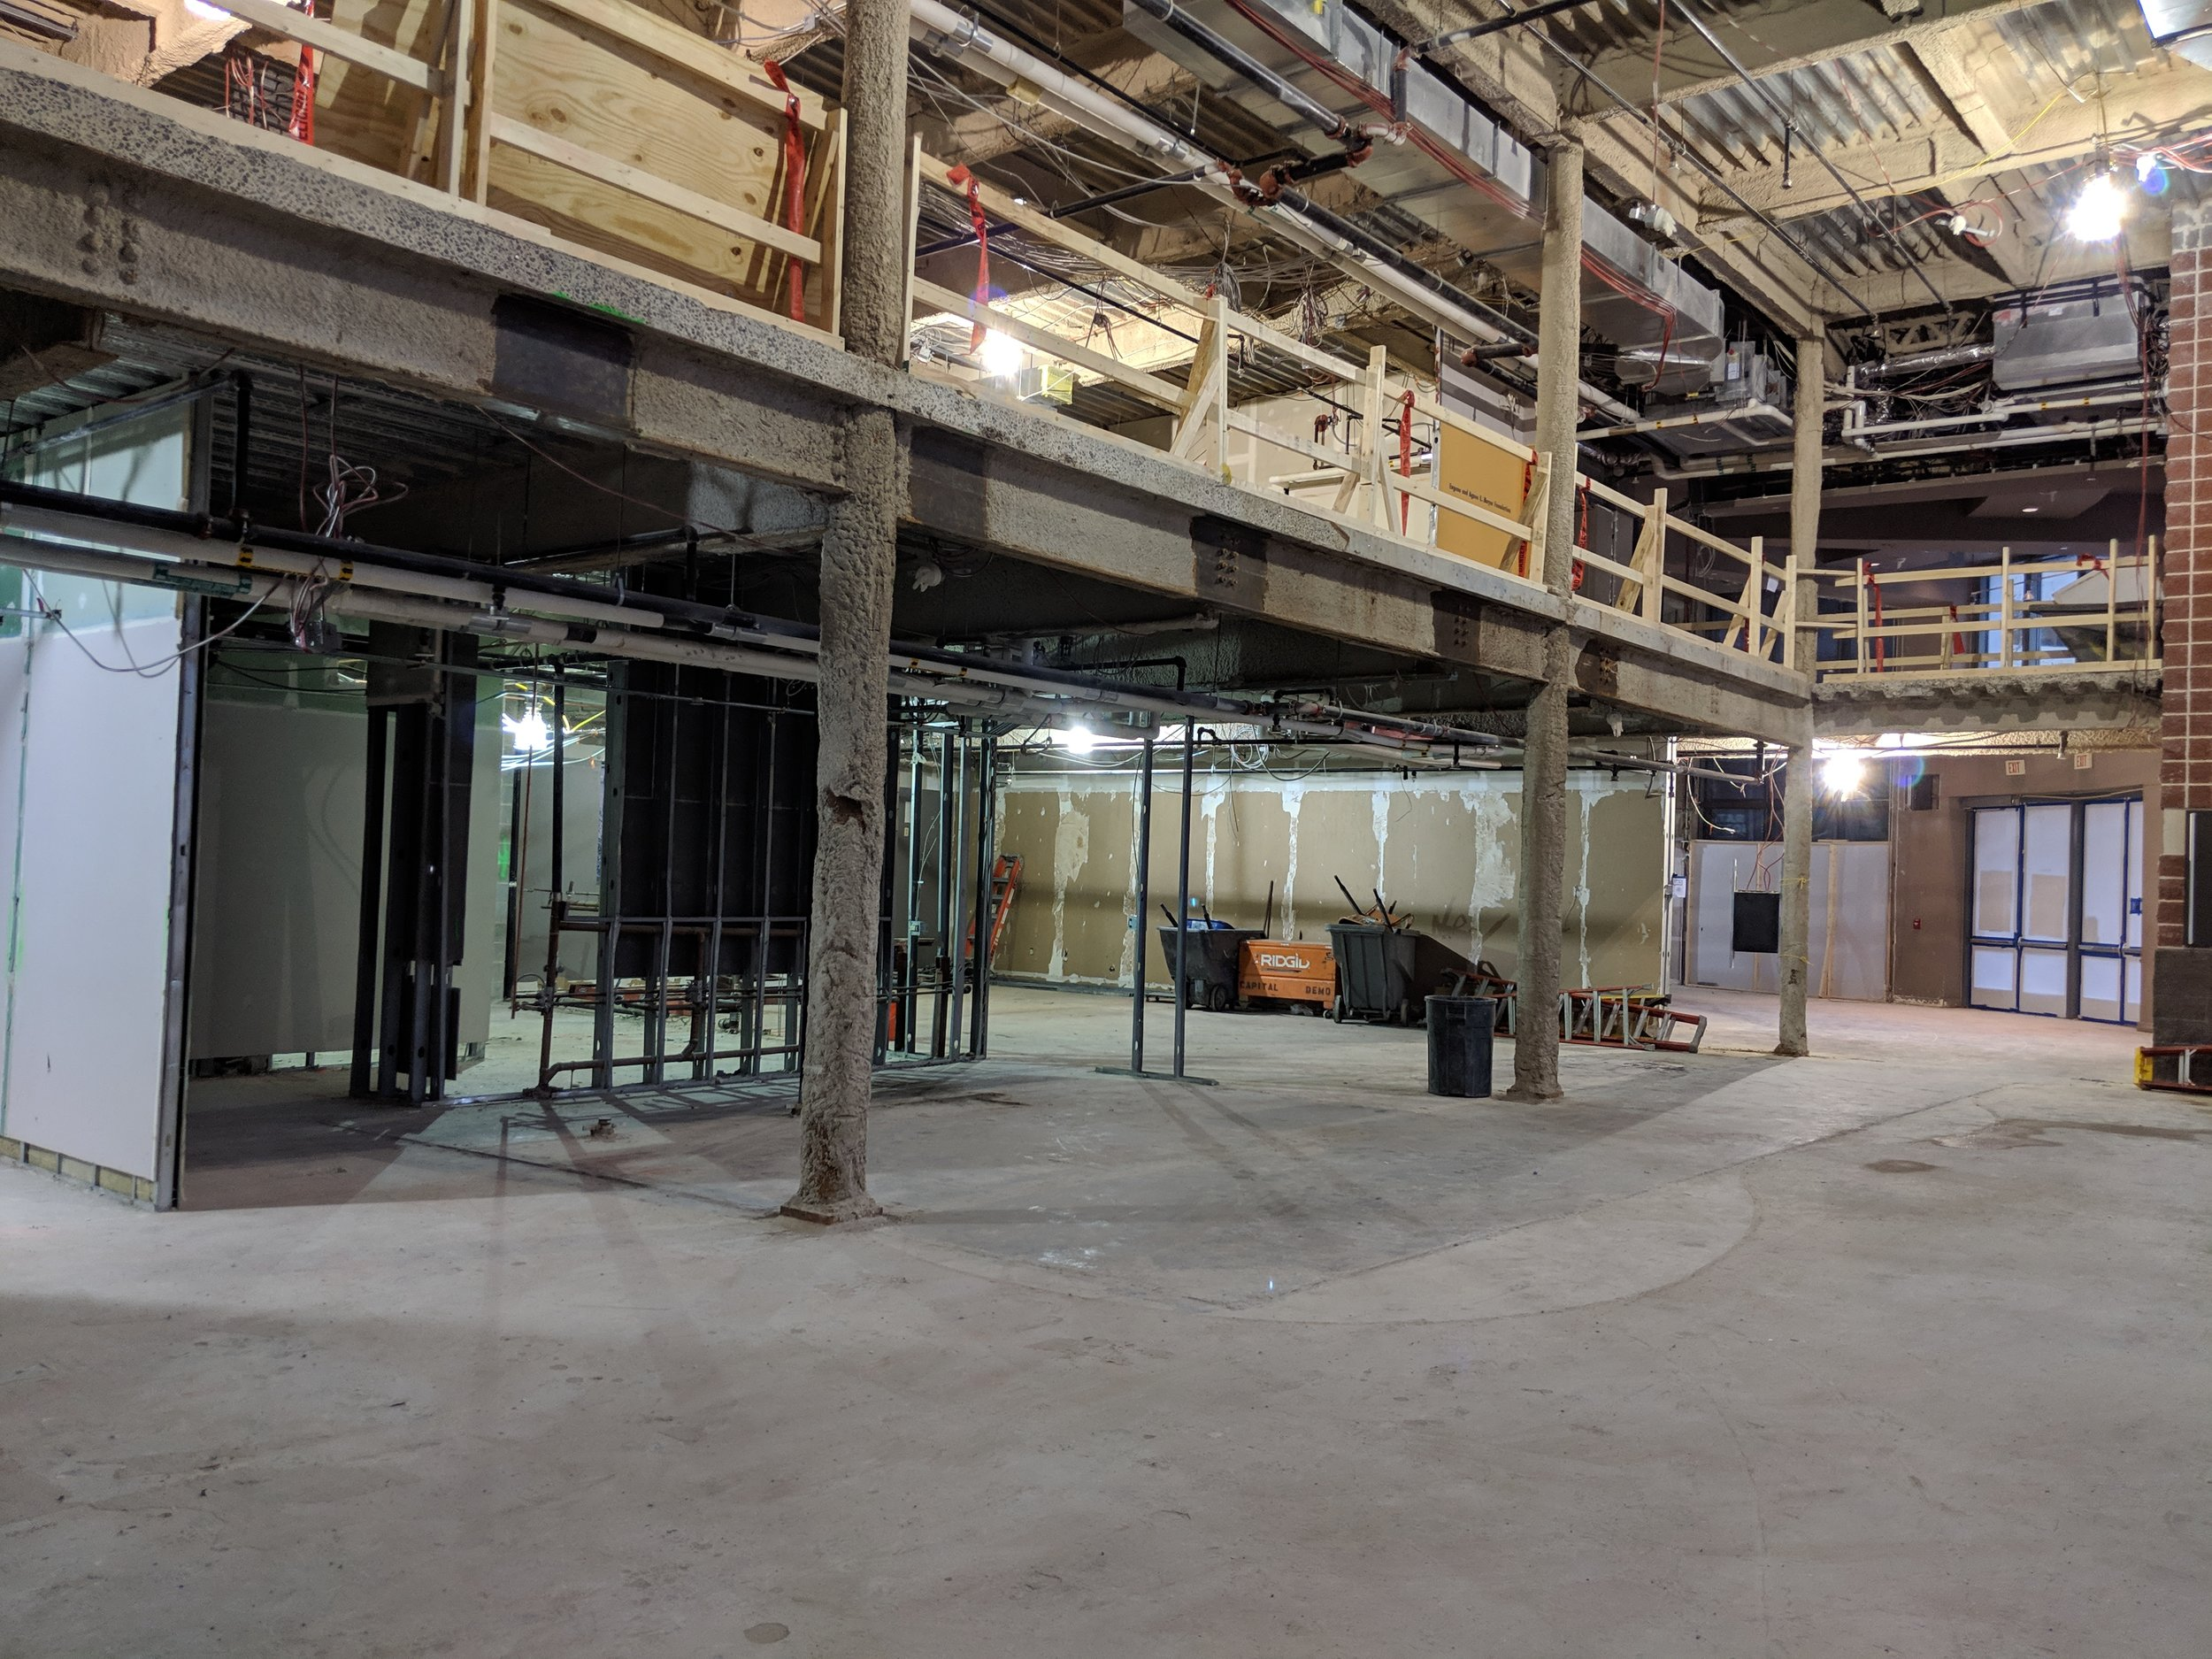 February 2019  - Where the concessions bar used to be has been completely removed, as well as most of the interior walls that separated the Patrons Lounge, restrooms, and storage closets.